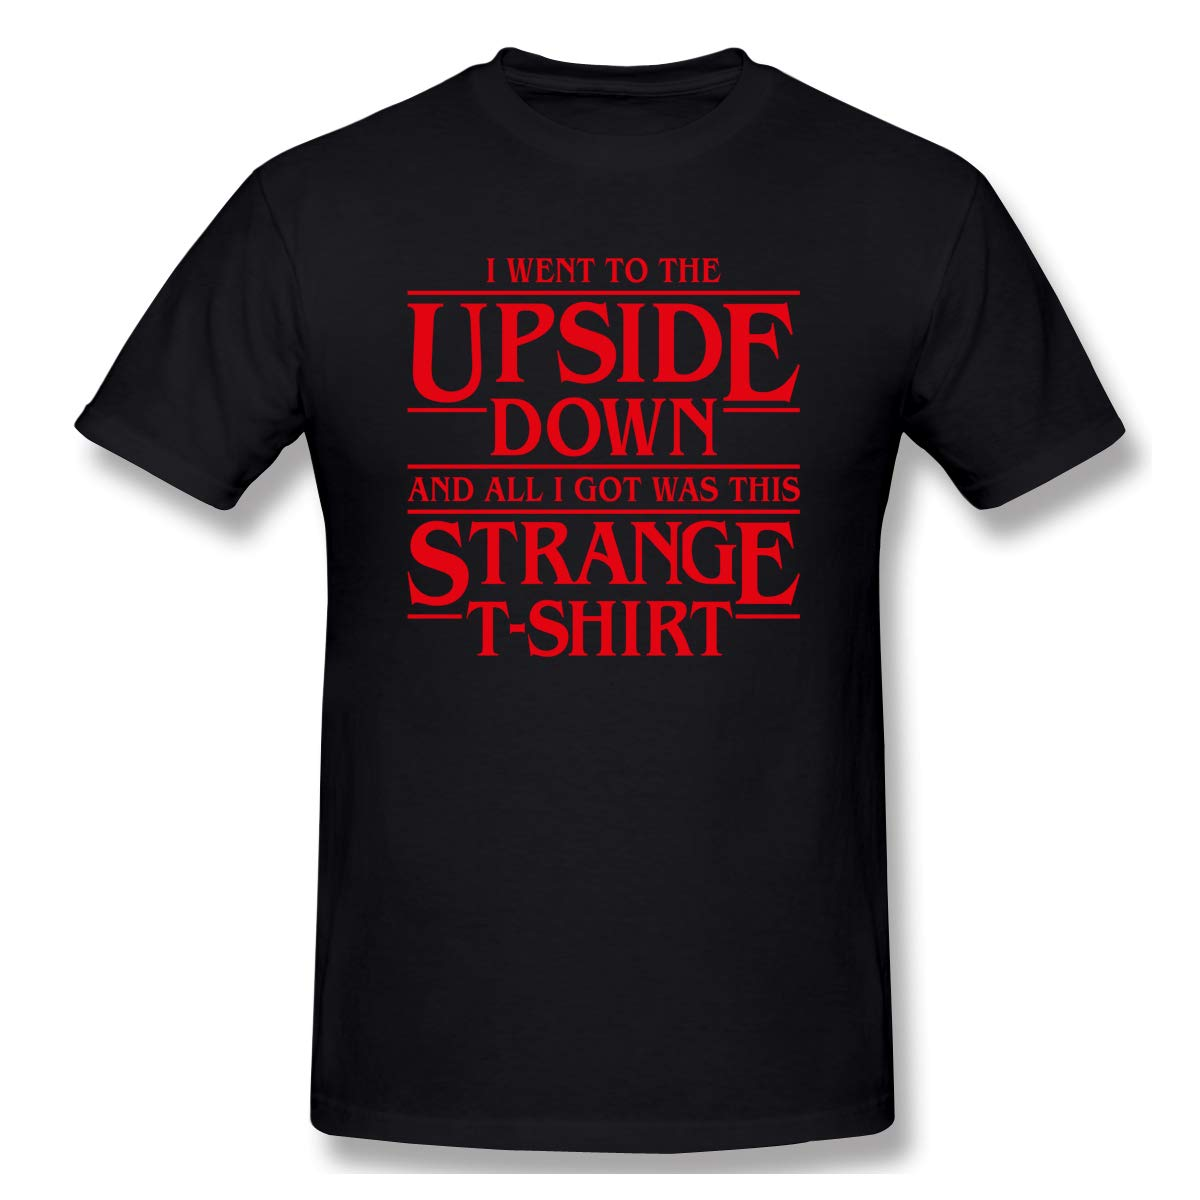 Nedting S I Went To The Upside Down Tshirts Black